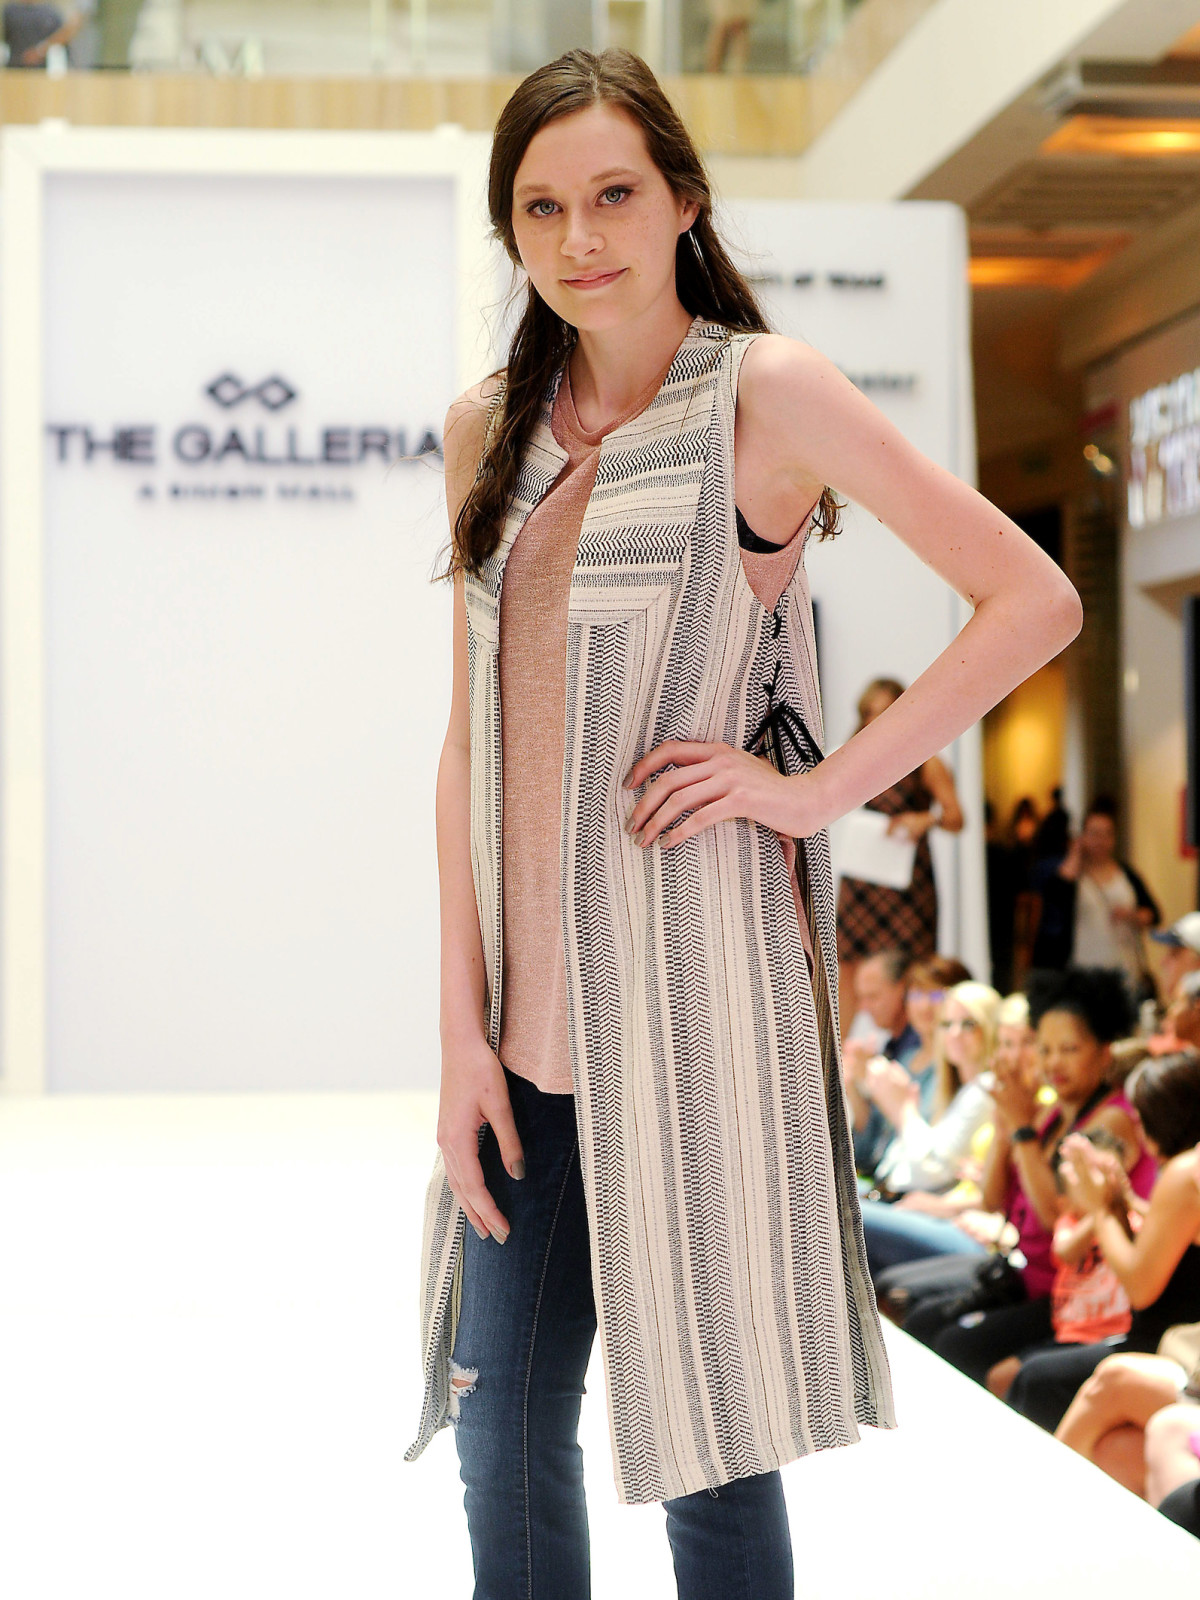 MD Anderson fashion show patient Sydney Kallus